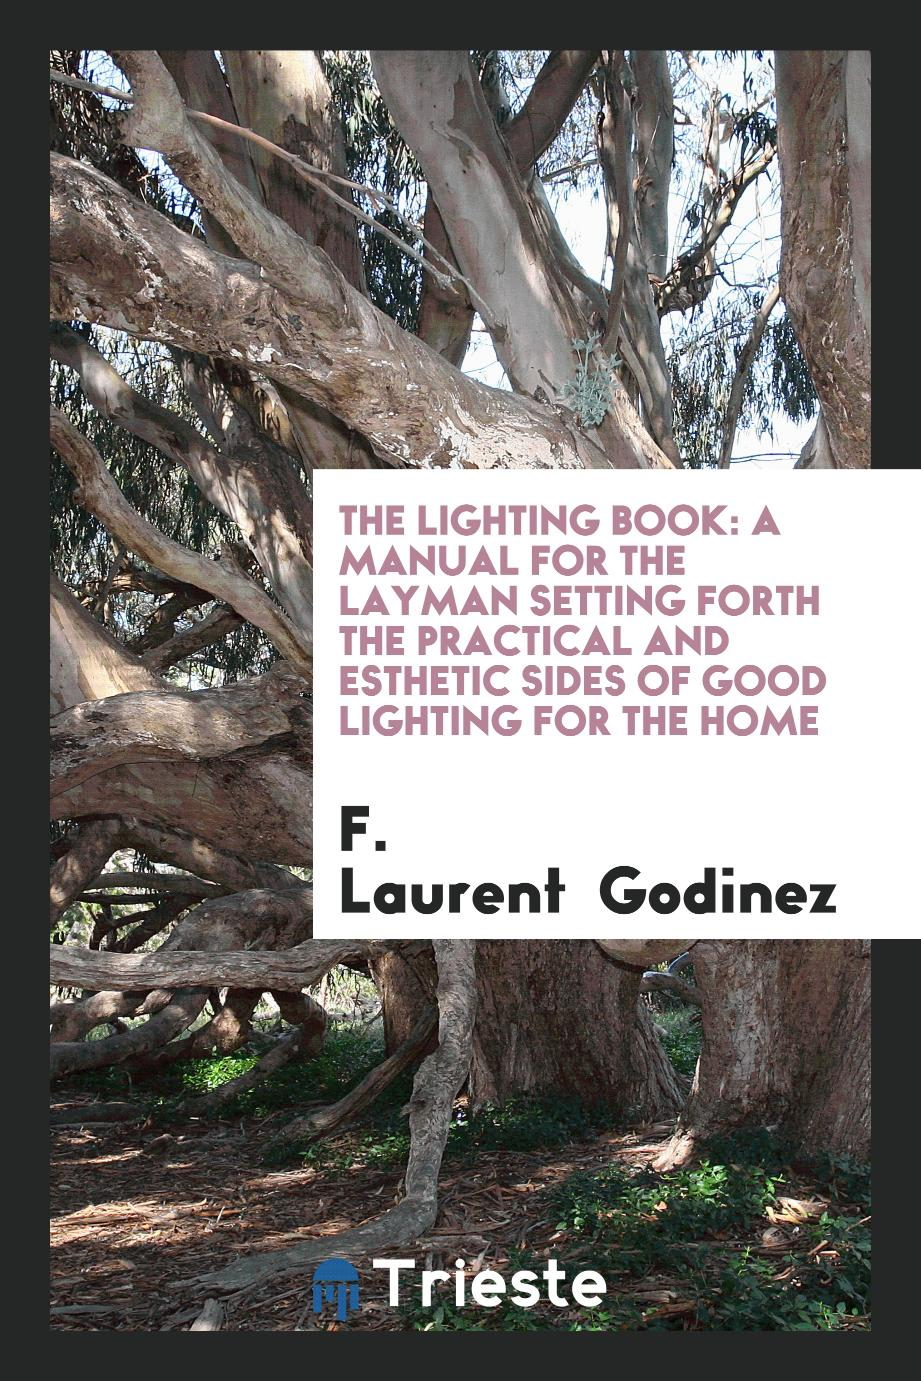 The Lighting Book: A Manual for the Layman Setting Forth the Practical and Esthetic Sides of Good Lighting for the Home